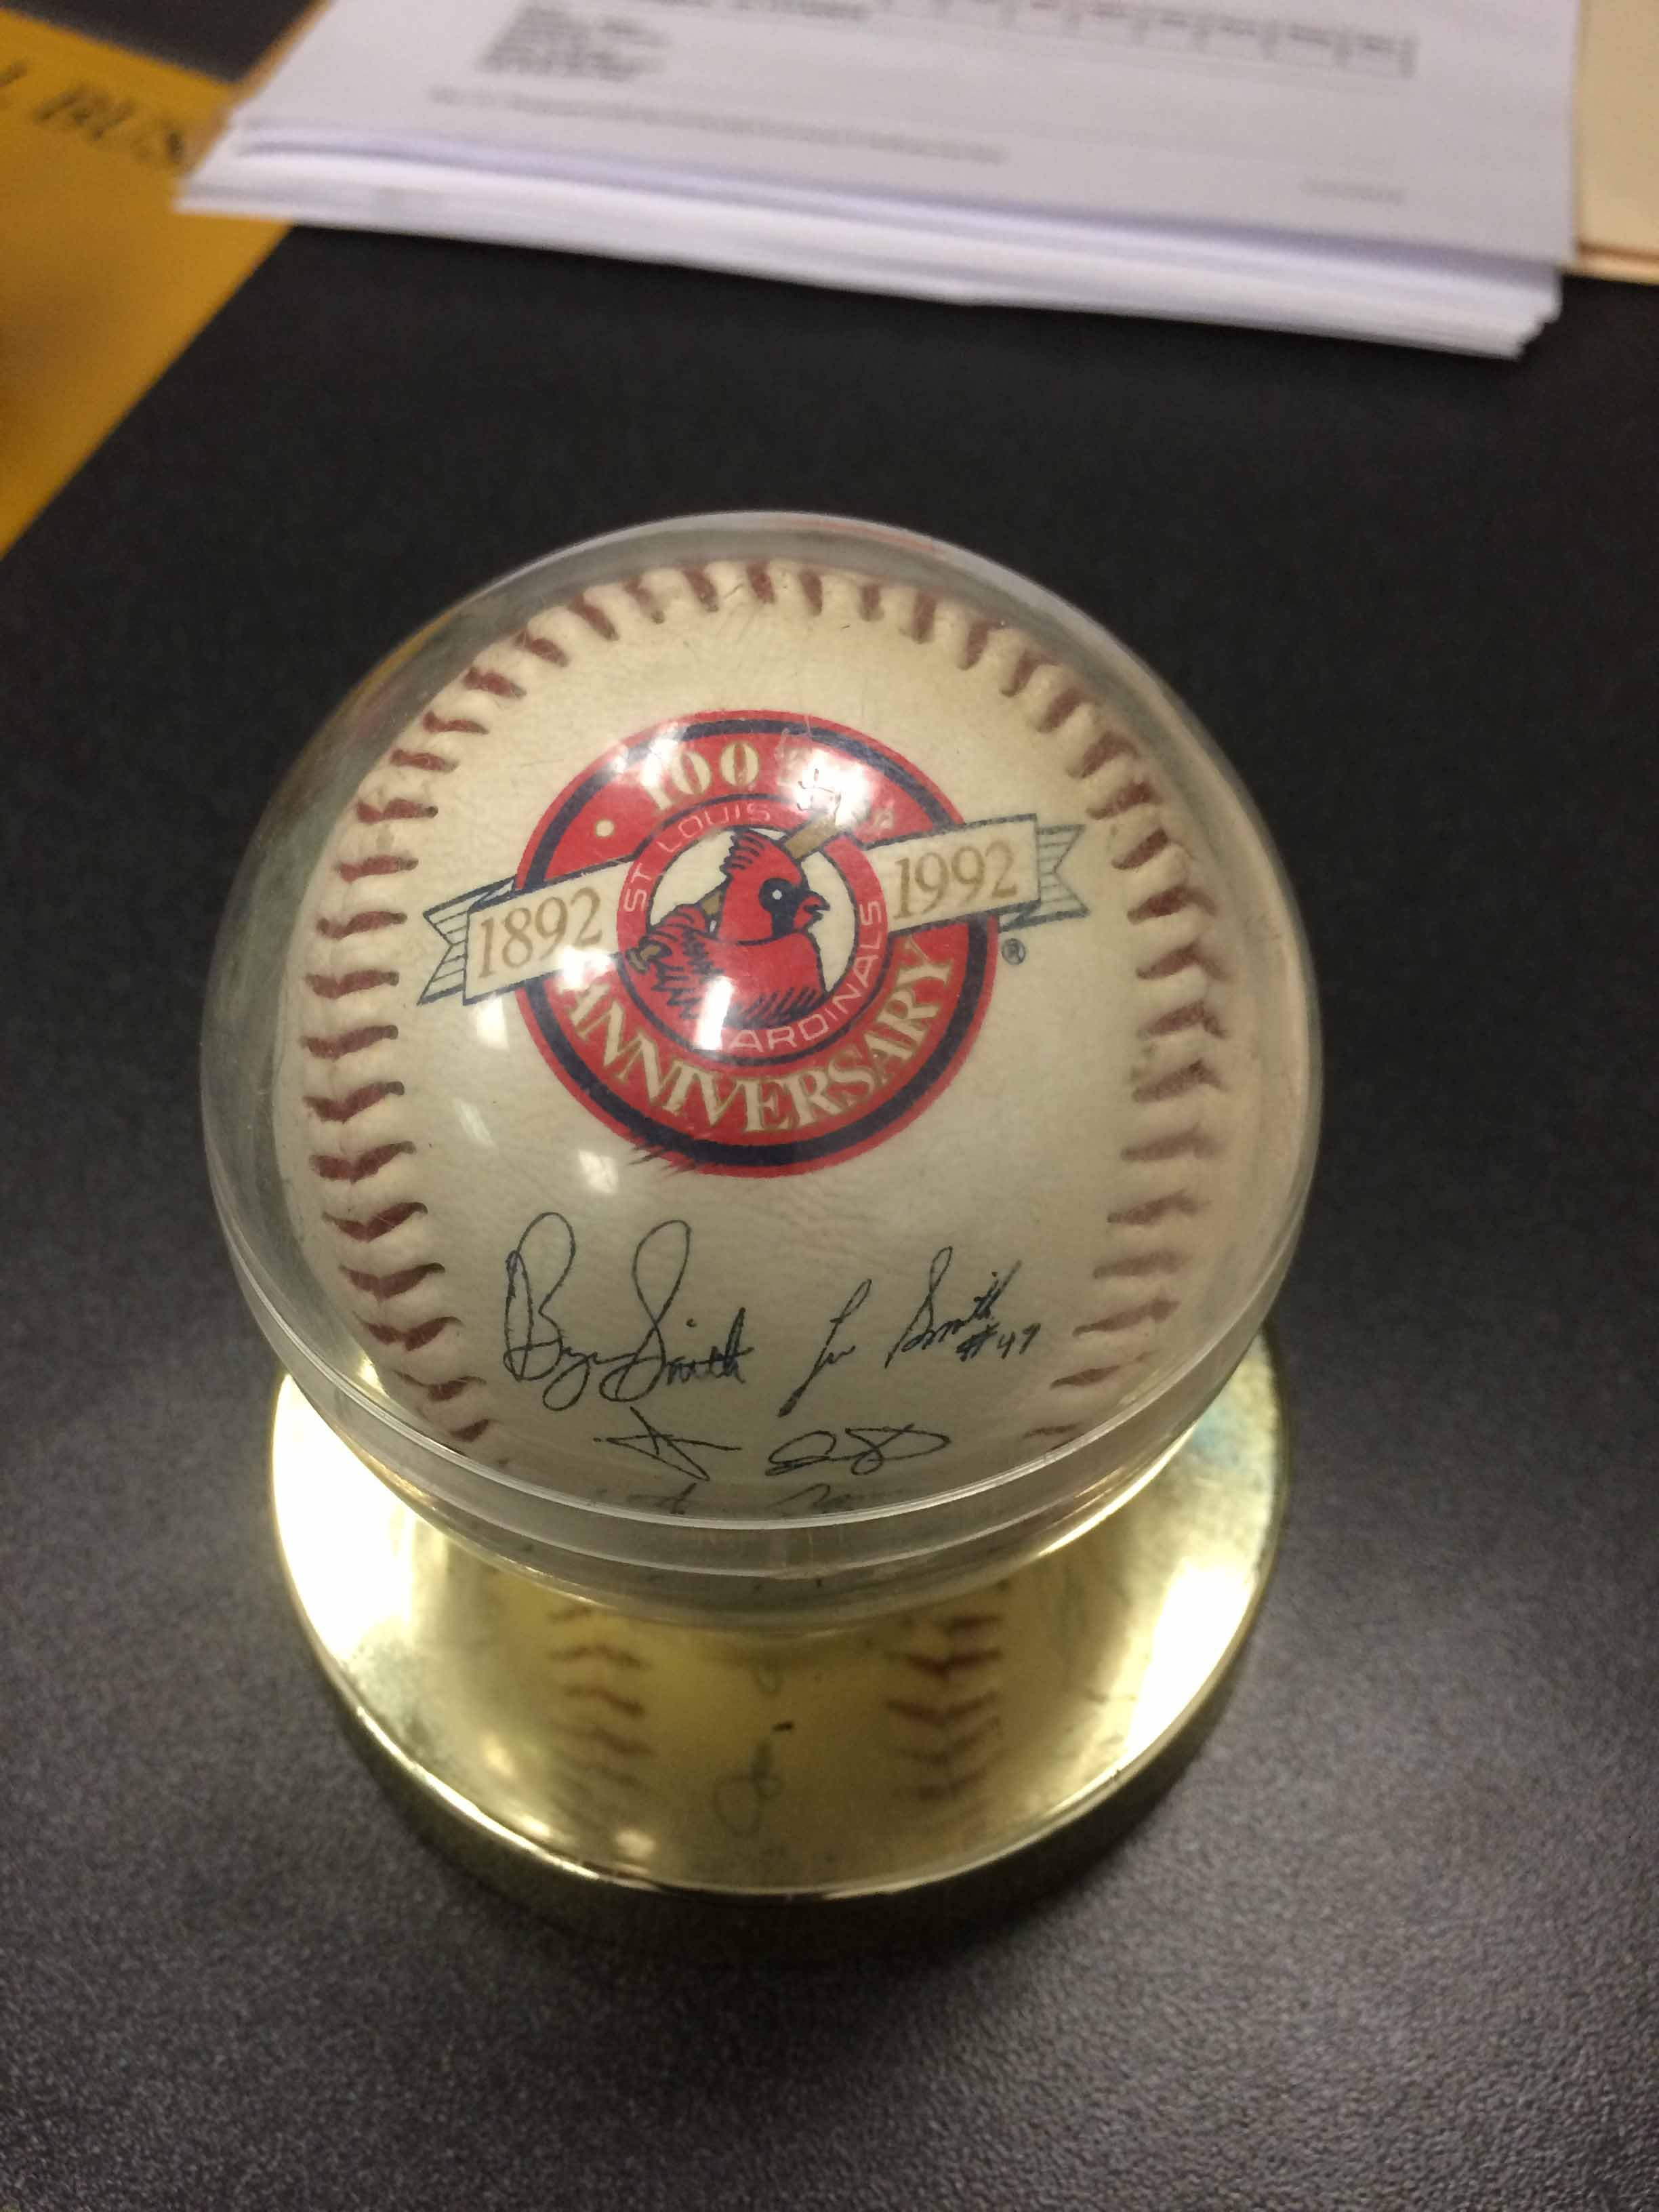 An autographed baseball that may have been taken by Jeremy Mitchell. Credit: Madison County Sheriff